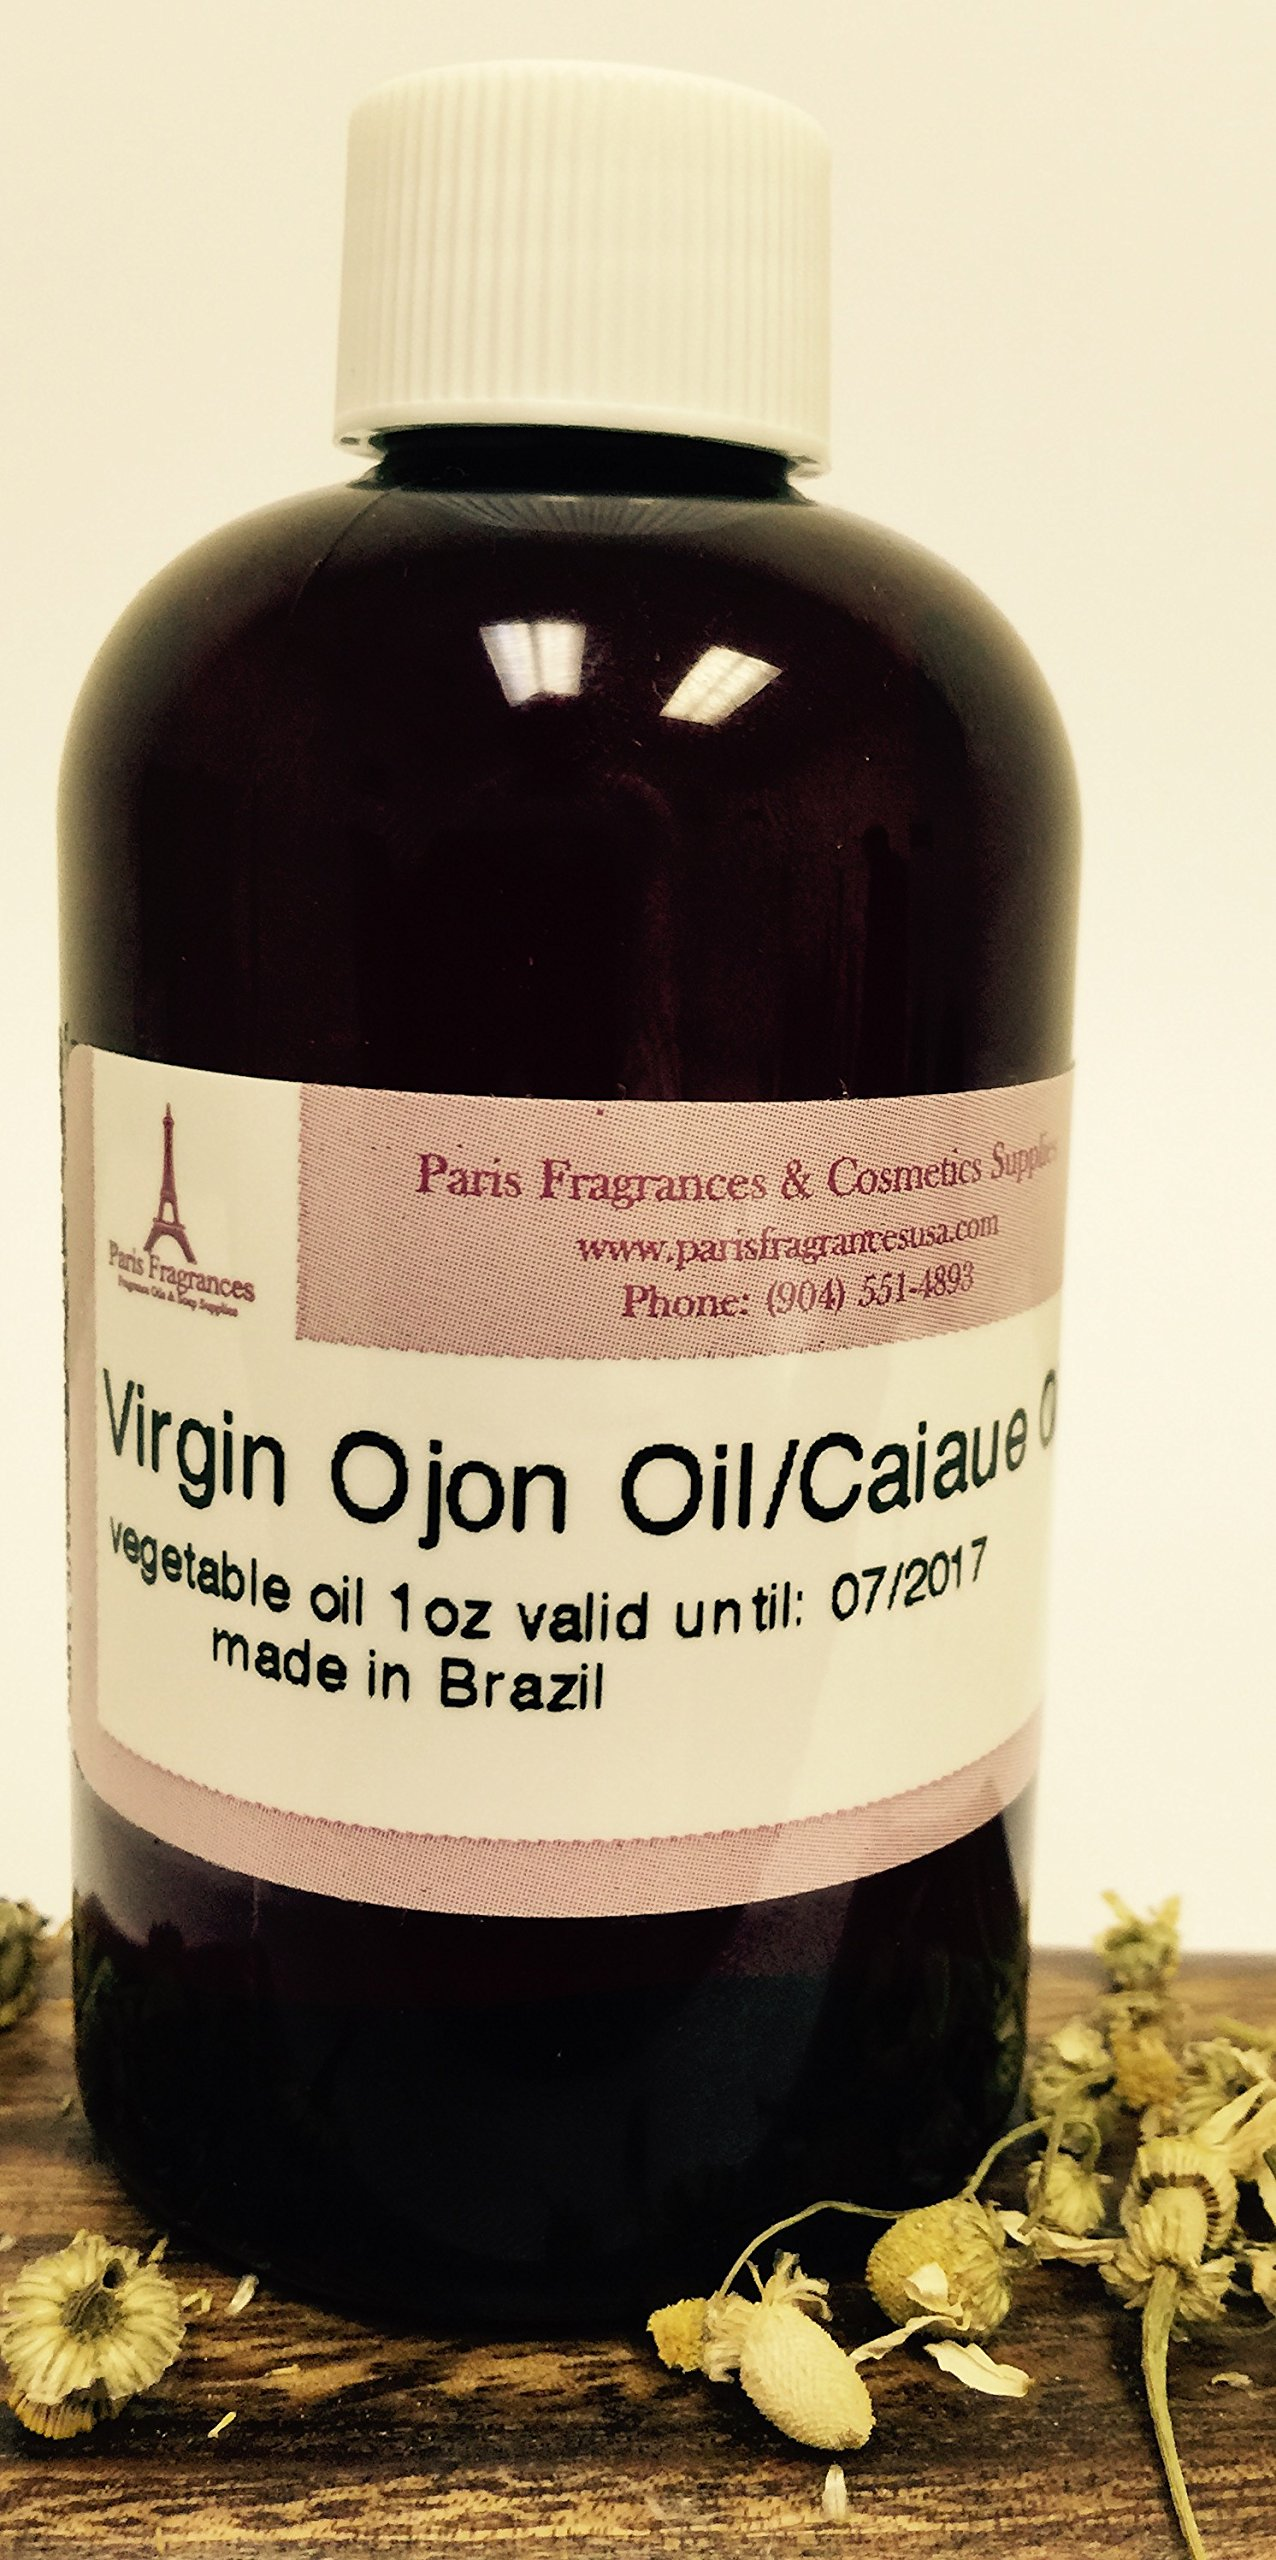 Caiaue Oil (Ojon Oil) - Unrefined & Raw - 1 Oz (30 ml) - Genuine - 100% Natural - Sustainable Product of The Brazilian Amazon - Extraction: Cold Pressed